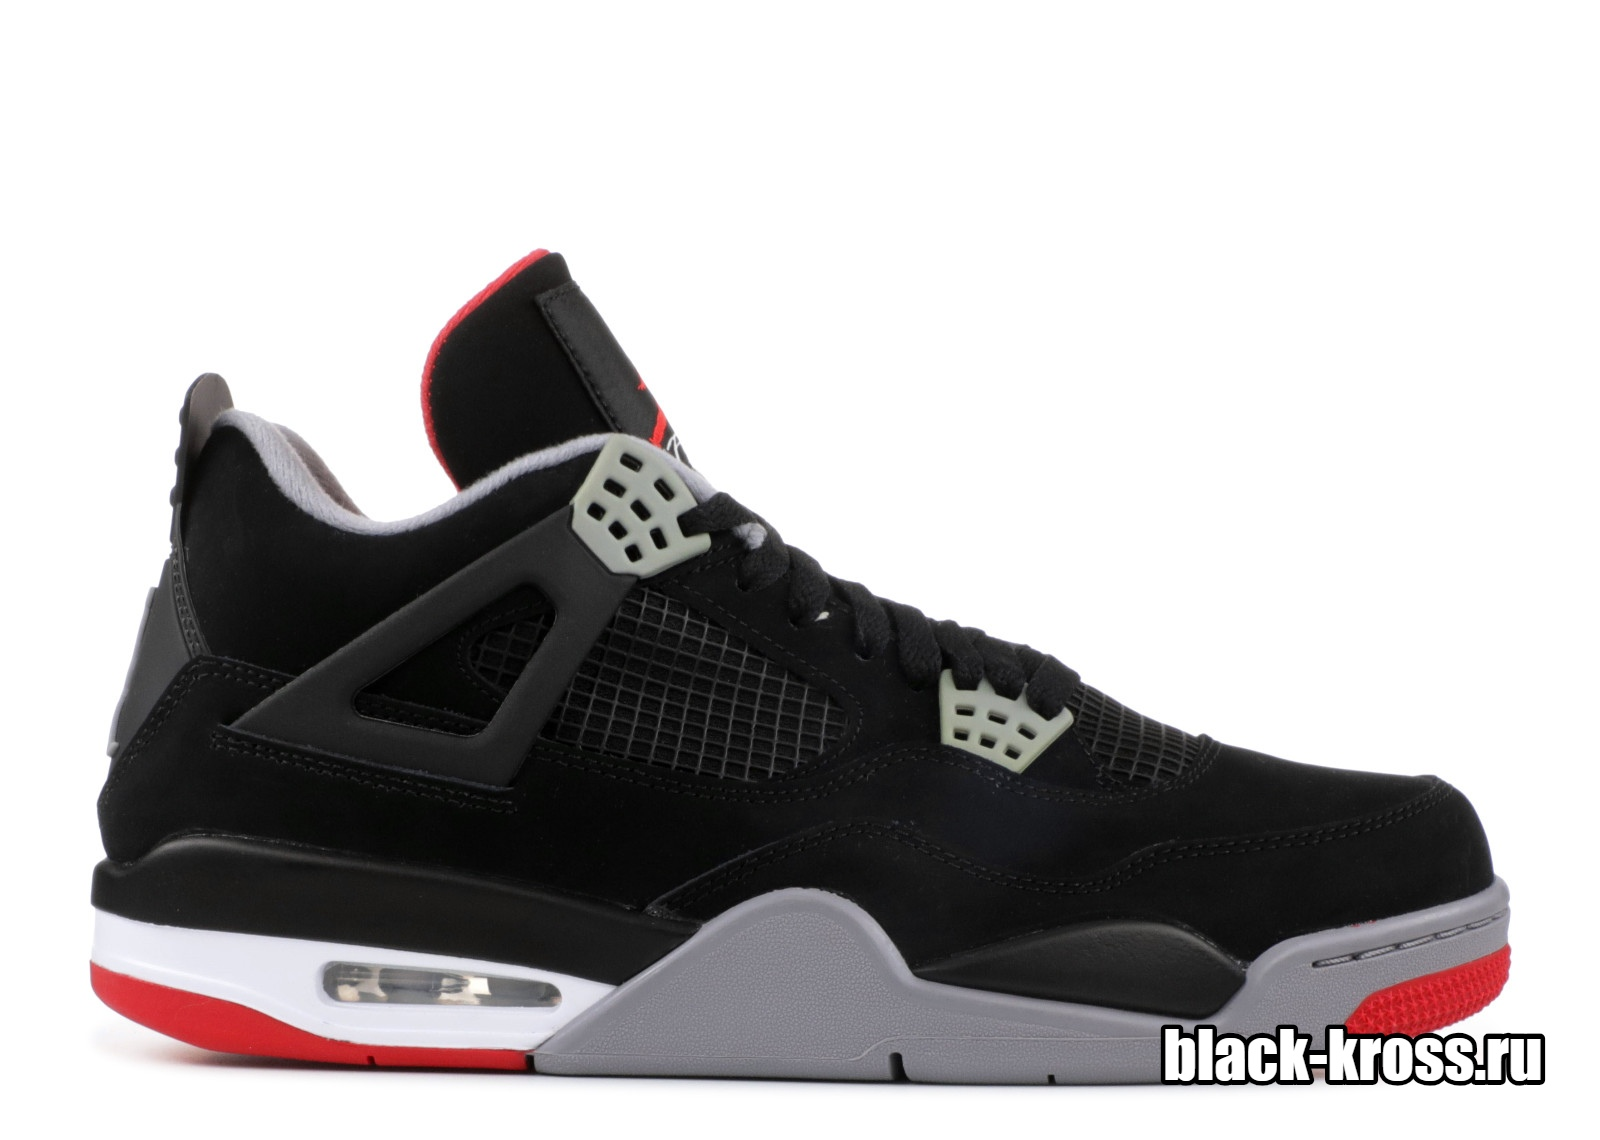 NIKE AIR JORDAN IV Black & Red (41-45)